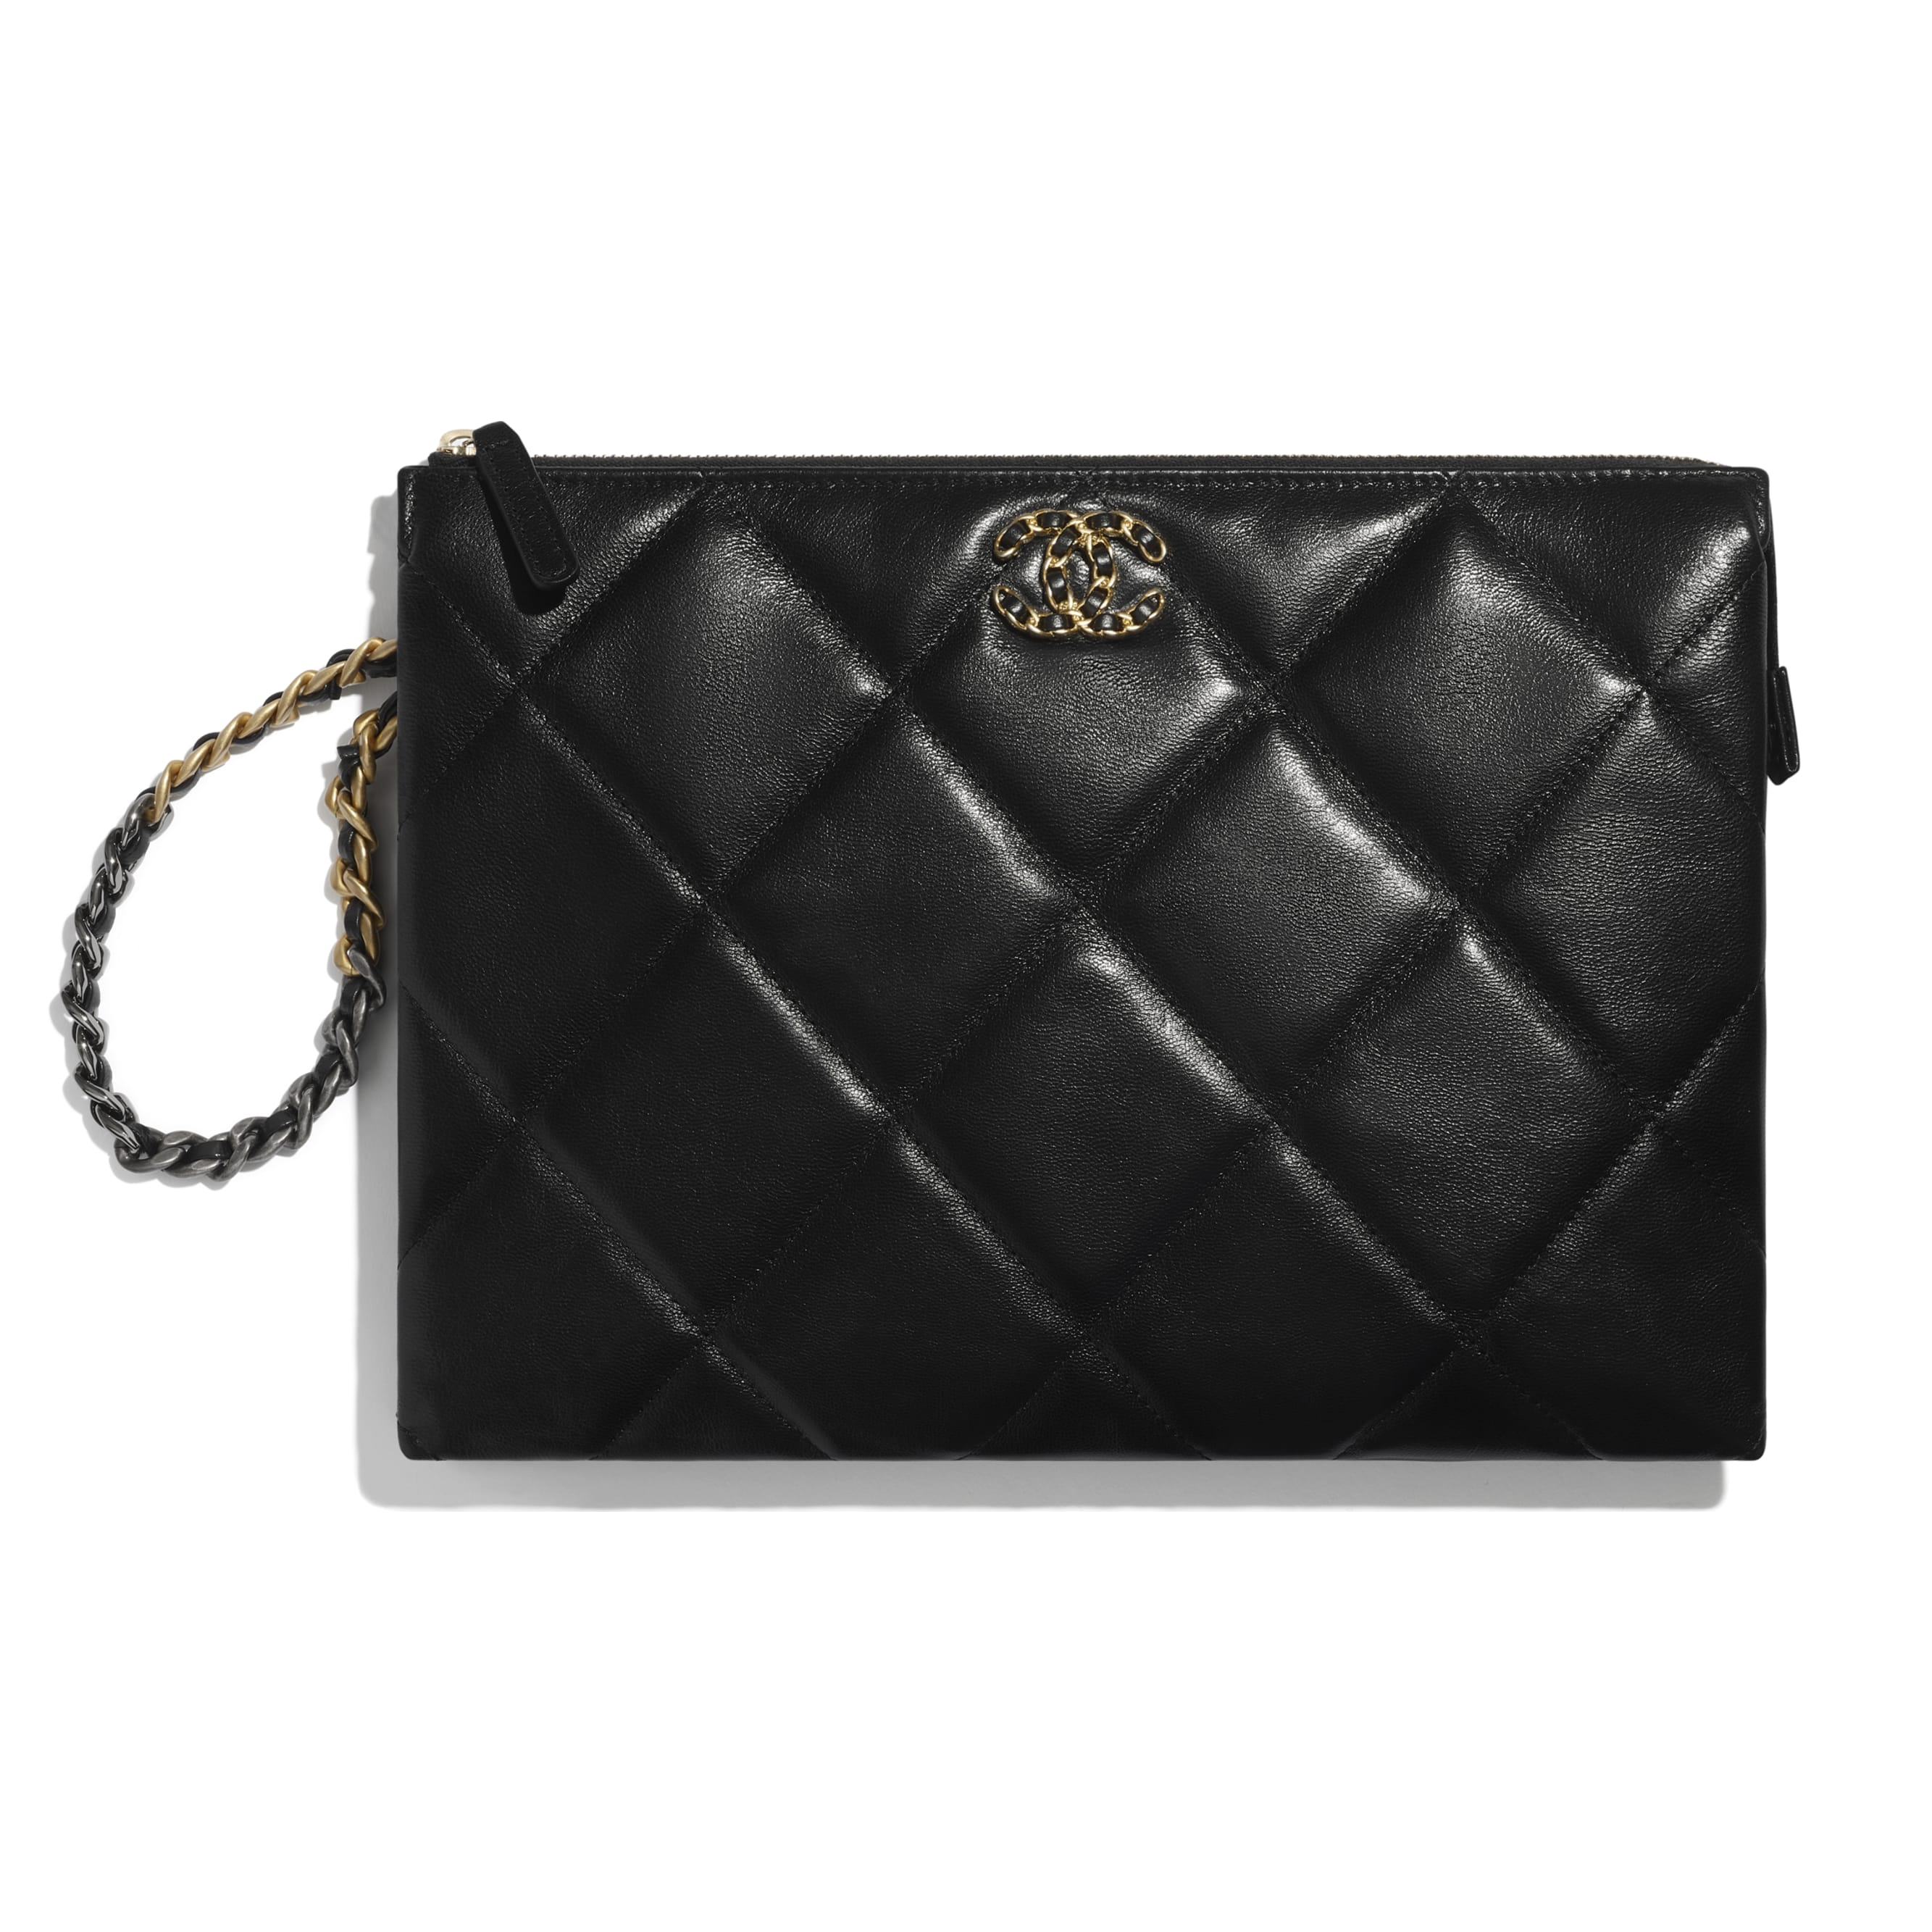 CHANEL 19 Pouch with Handle - Black - Shiny Goatskin, Gold-Tone, Silver-Tone & Ruthenium-Finish Metal - CHANEL - Default view - see standard sized version